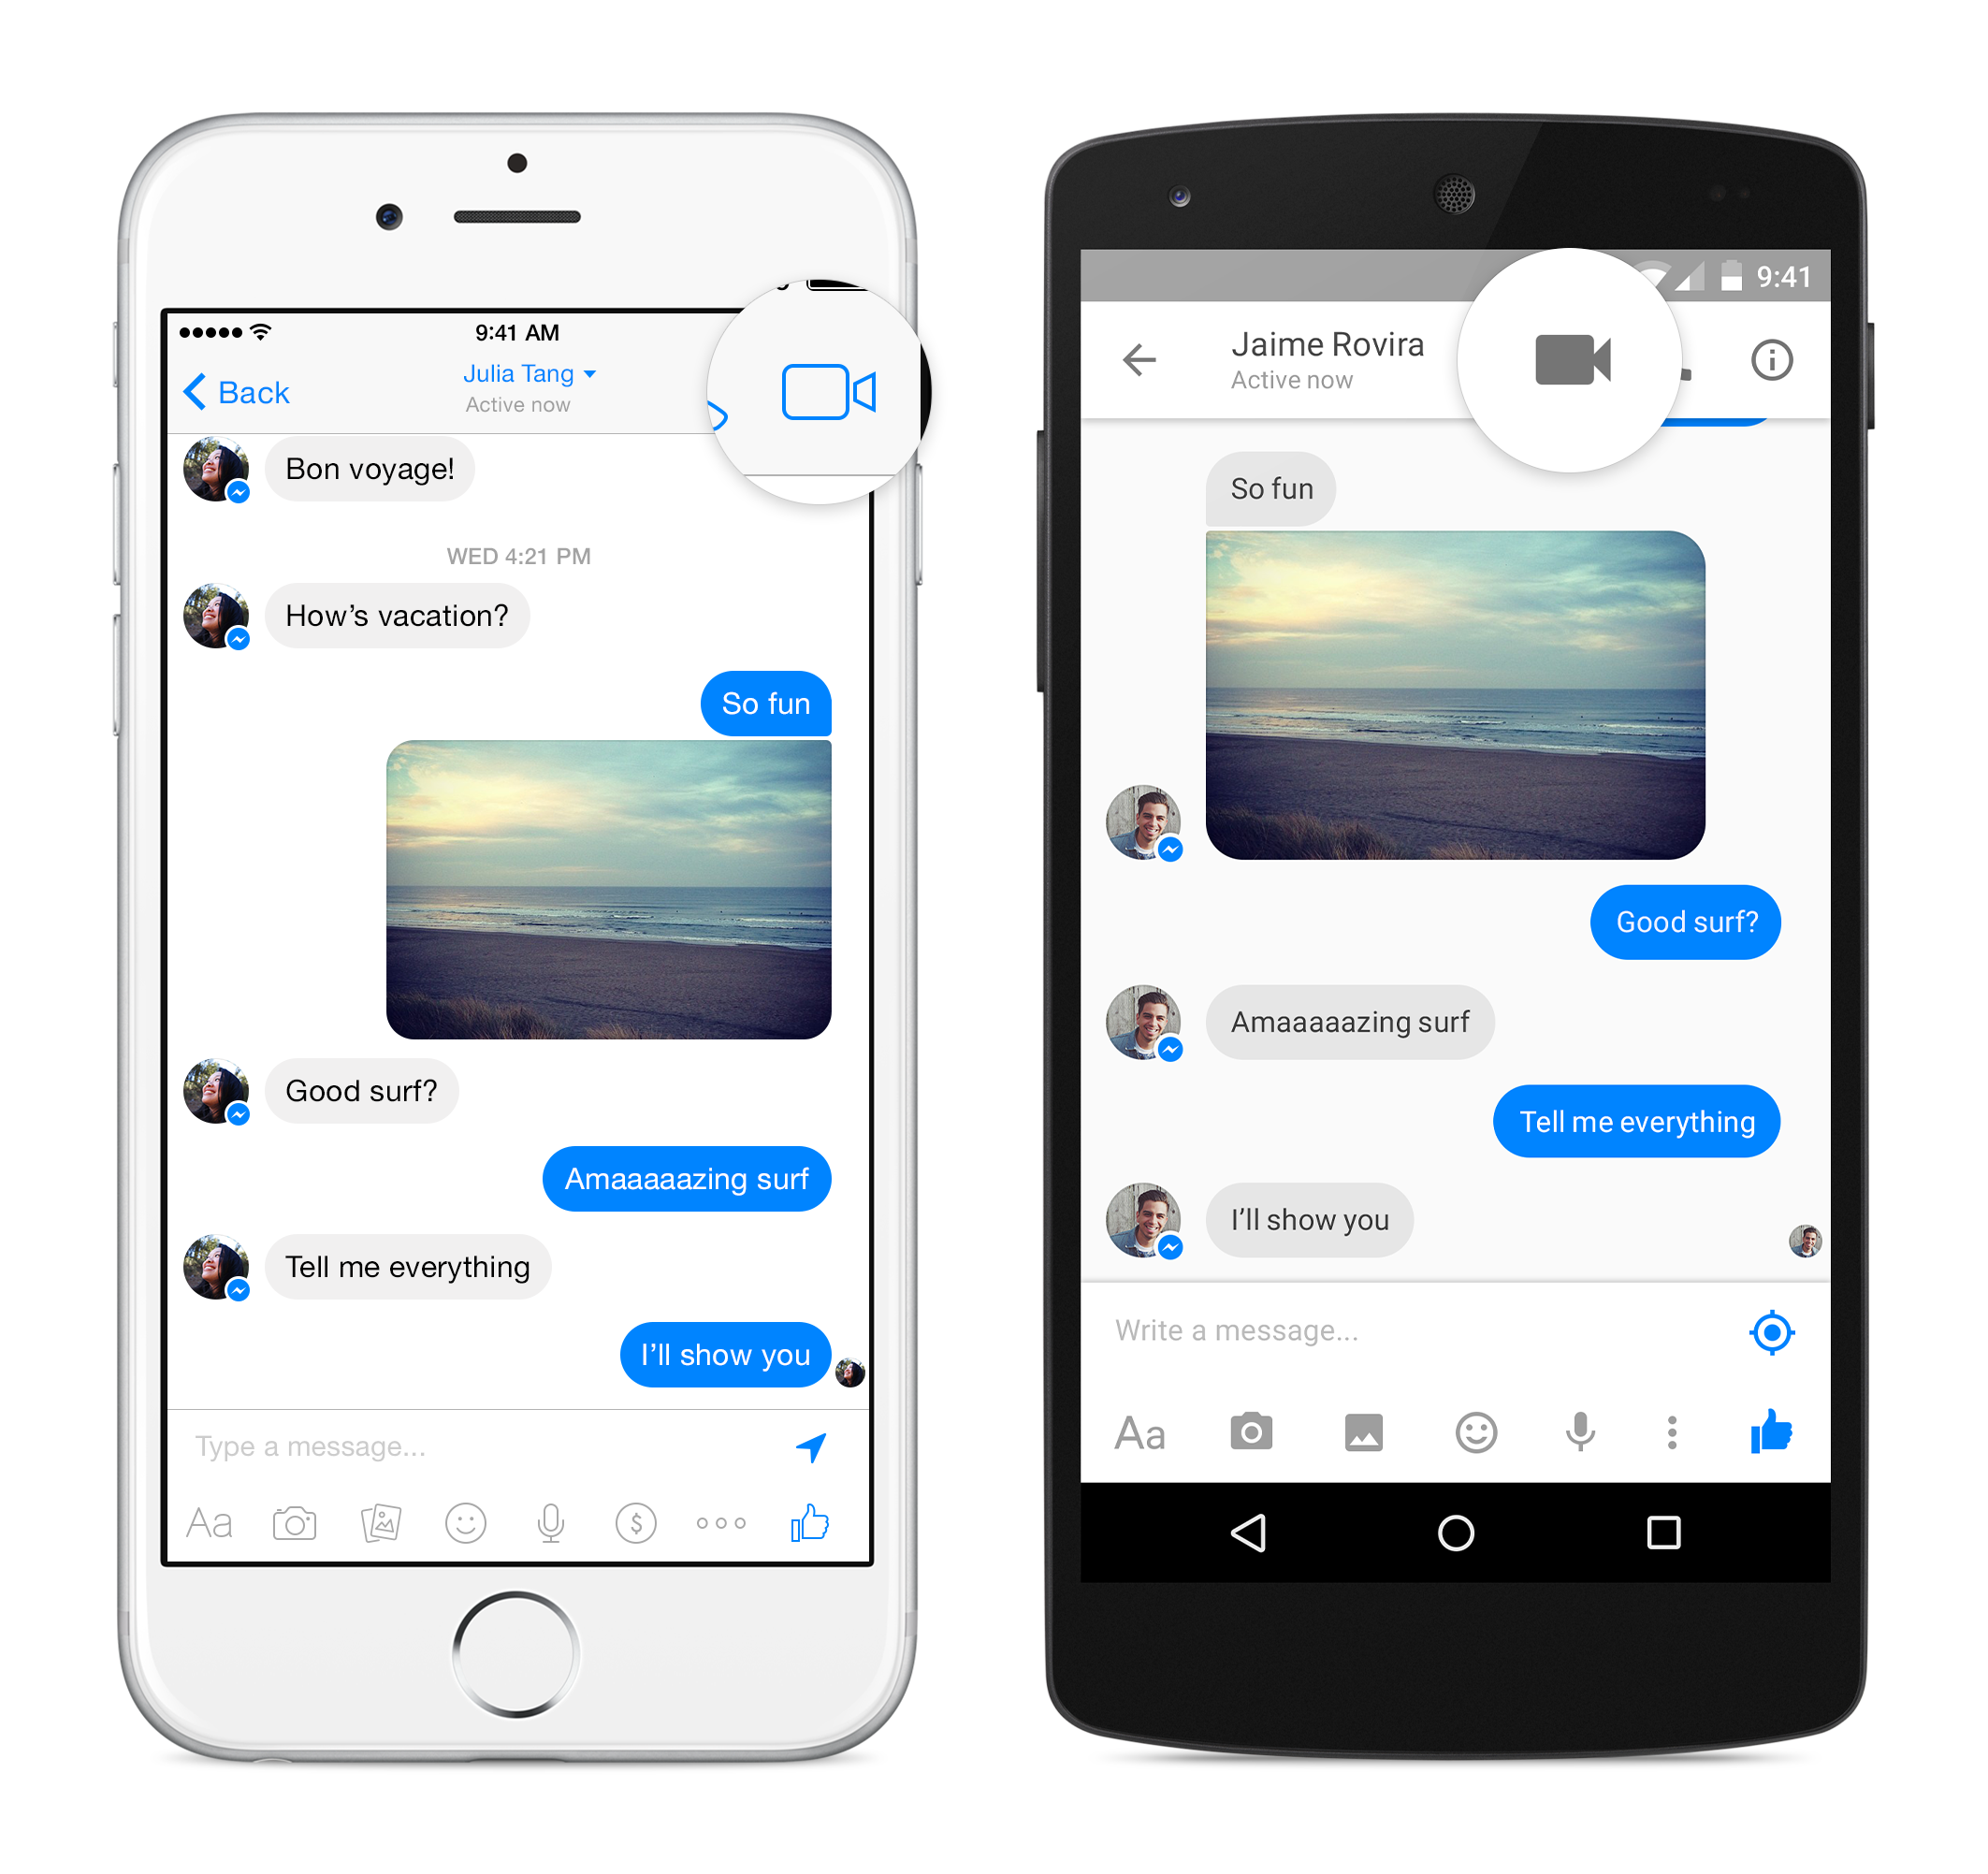 Facebook Adds Free Video Calling To Messenger App, No Update